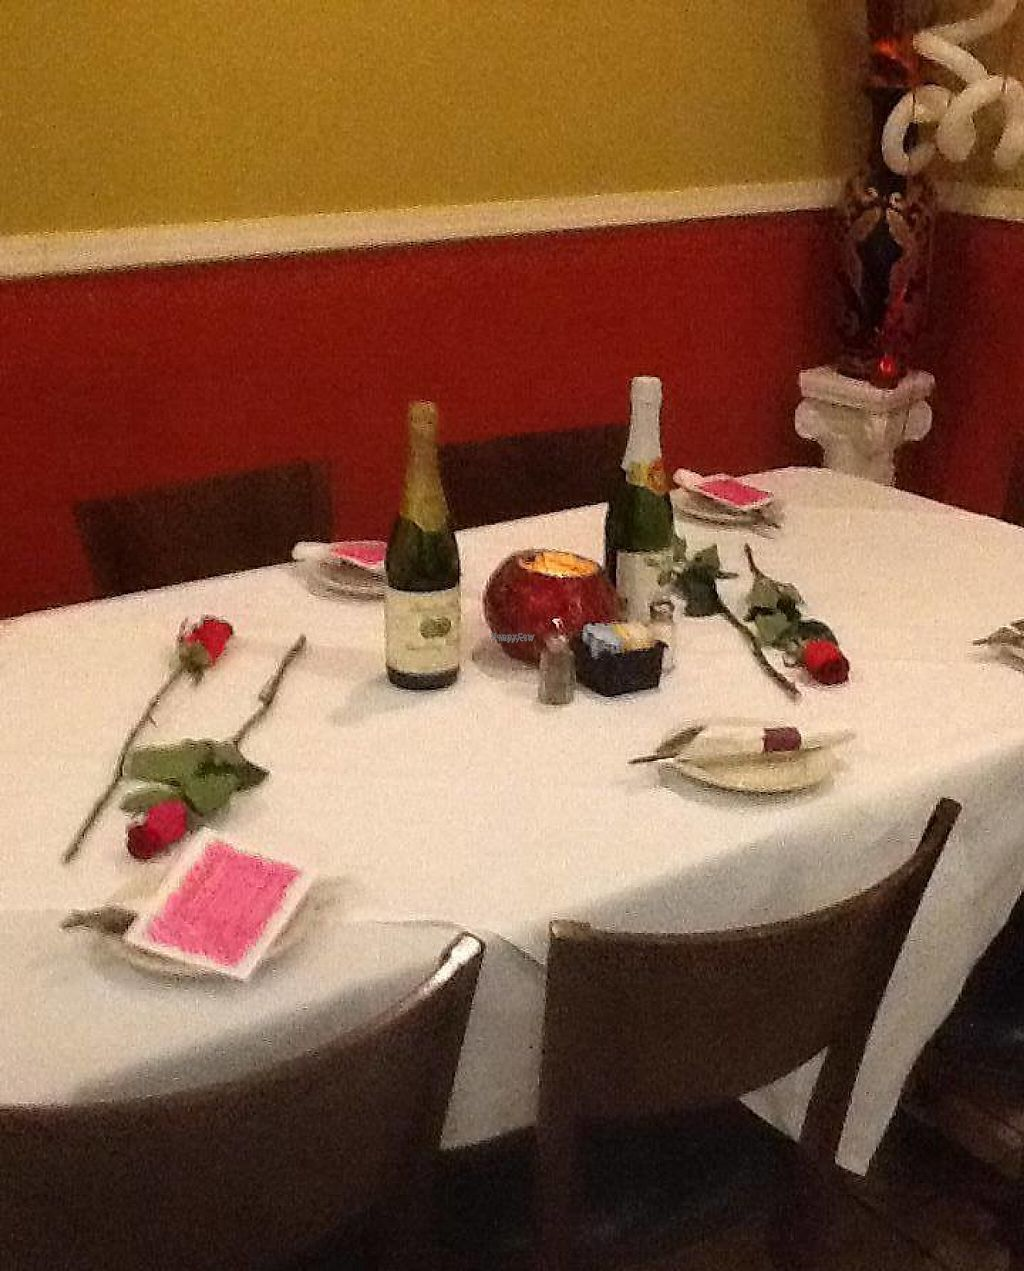 """Photo of At The Table  by <a href=""""/members/profile/community"""">community</a> <br/>At The Table Restaurant <br/> February 11, 2017  - <a href='/contact/abuse/image/76906/225290'>Report</a>"""